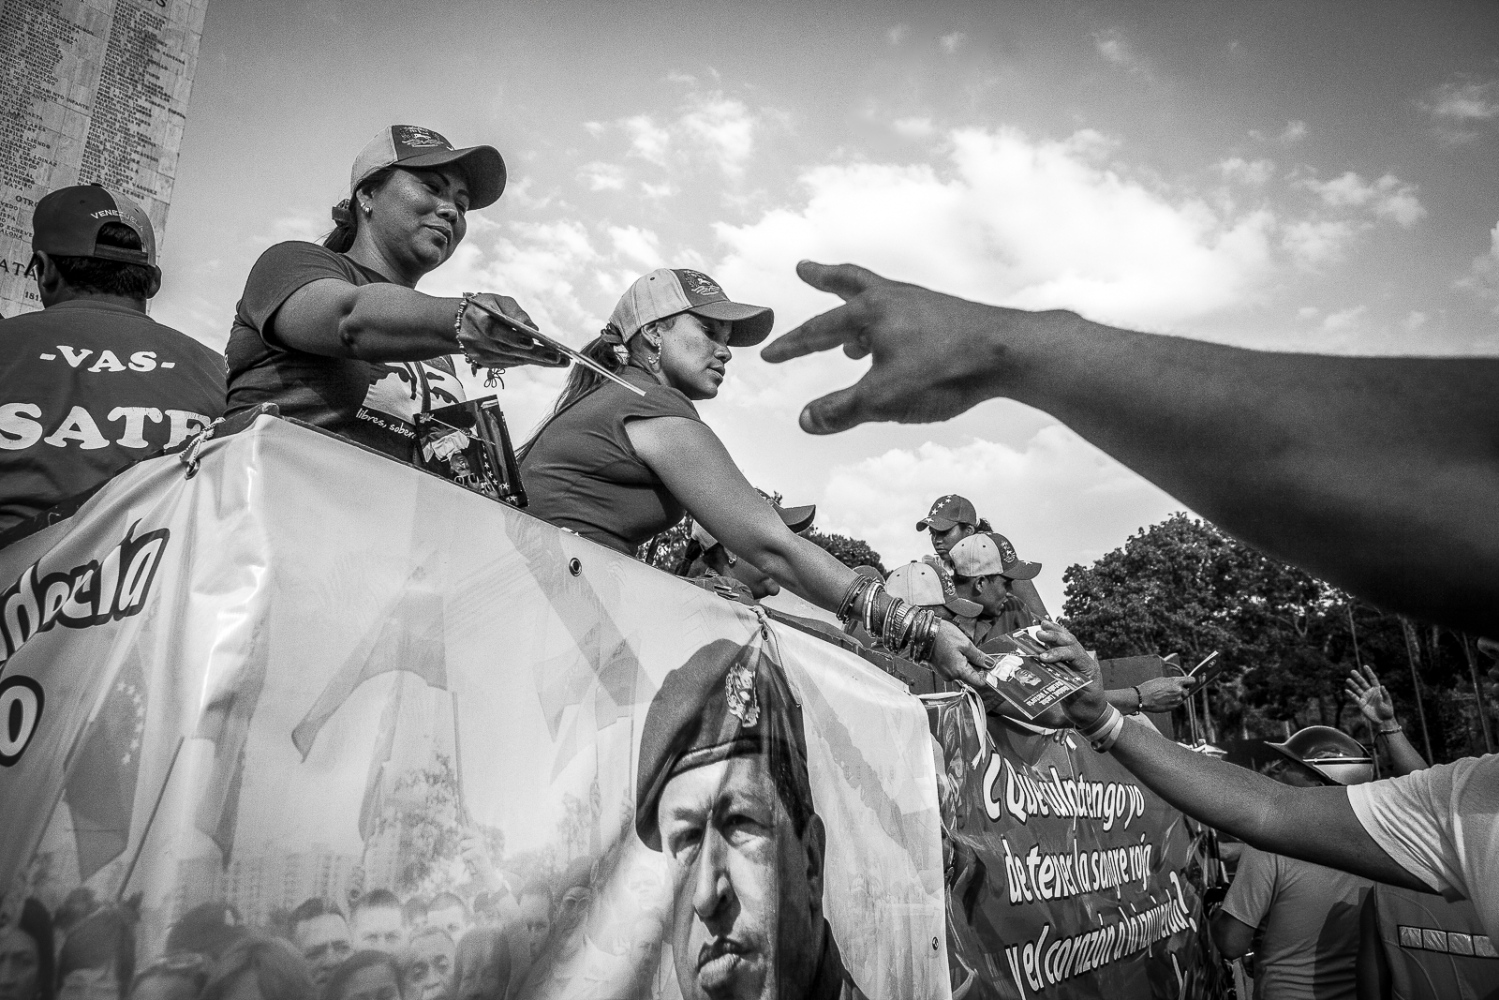 Chávez supporters distribute propaganda during the funeral of Venezuela's President, Hugo Chávez, in Caracas, 8th March 2013. With the death of the President new elections were called to name his sucessor.